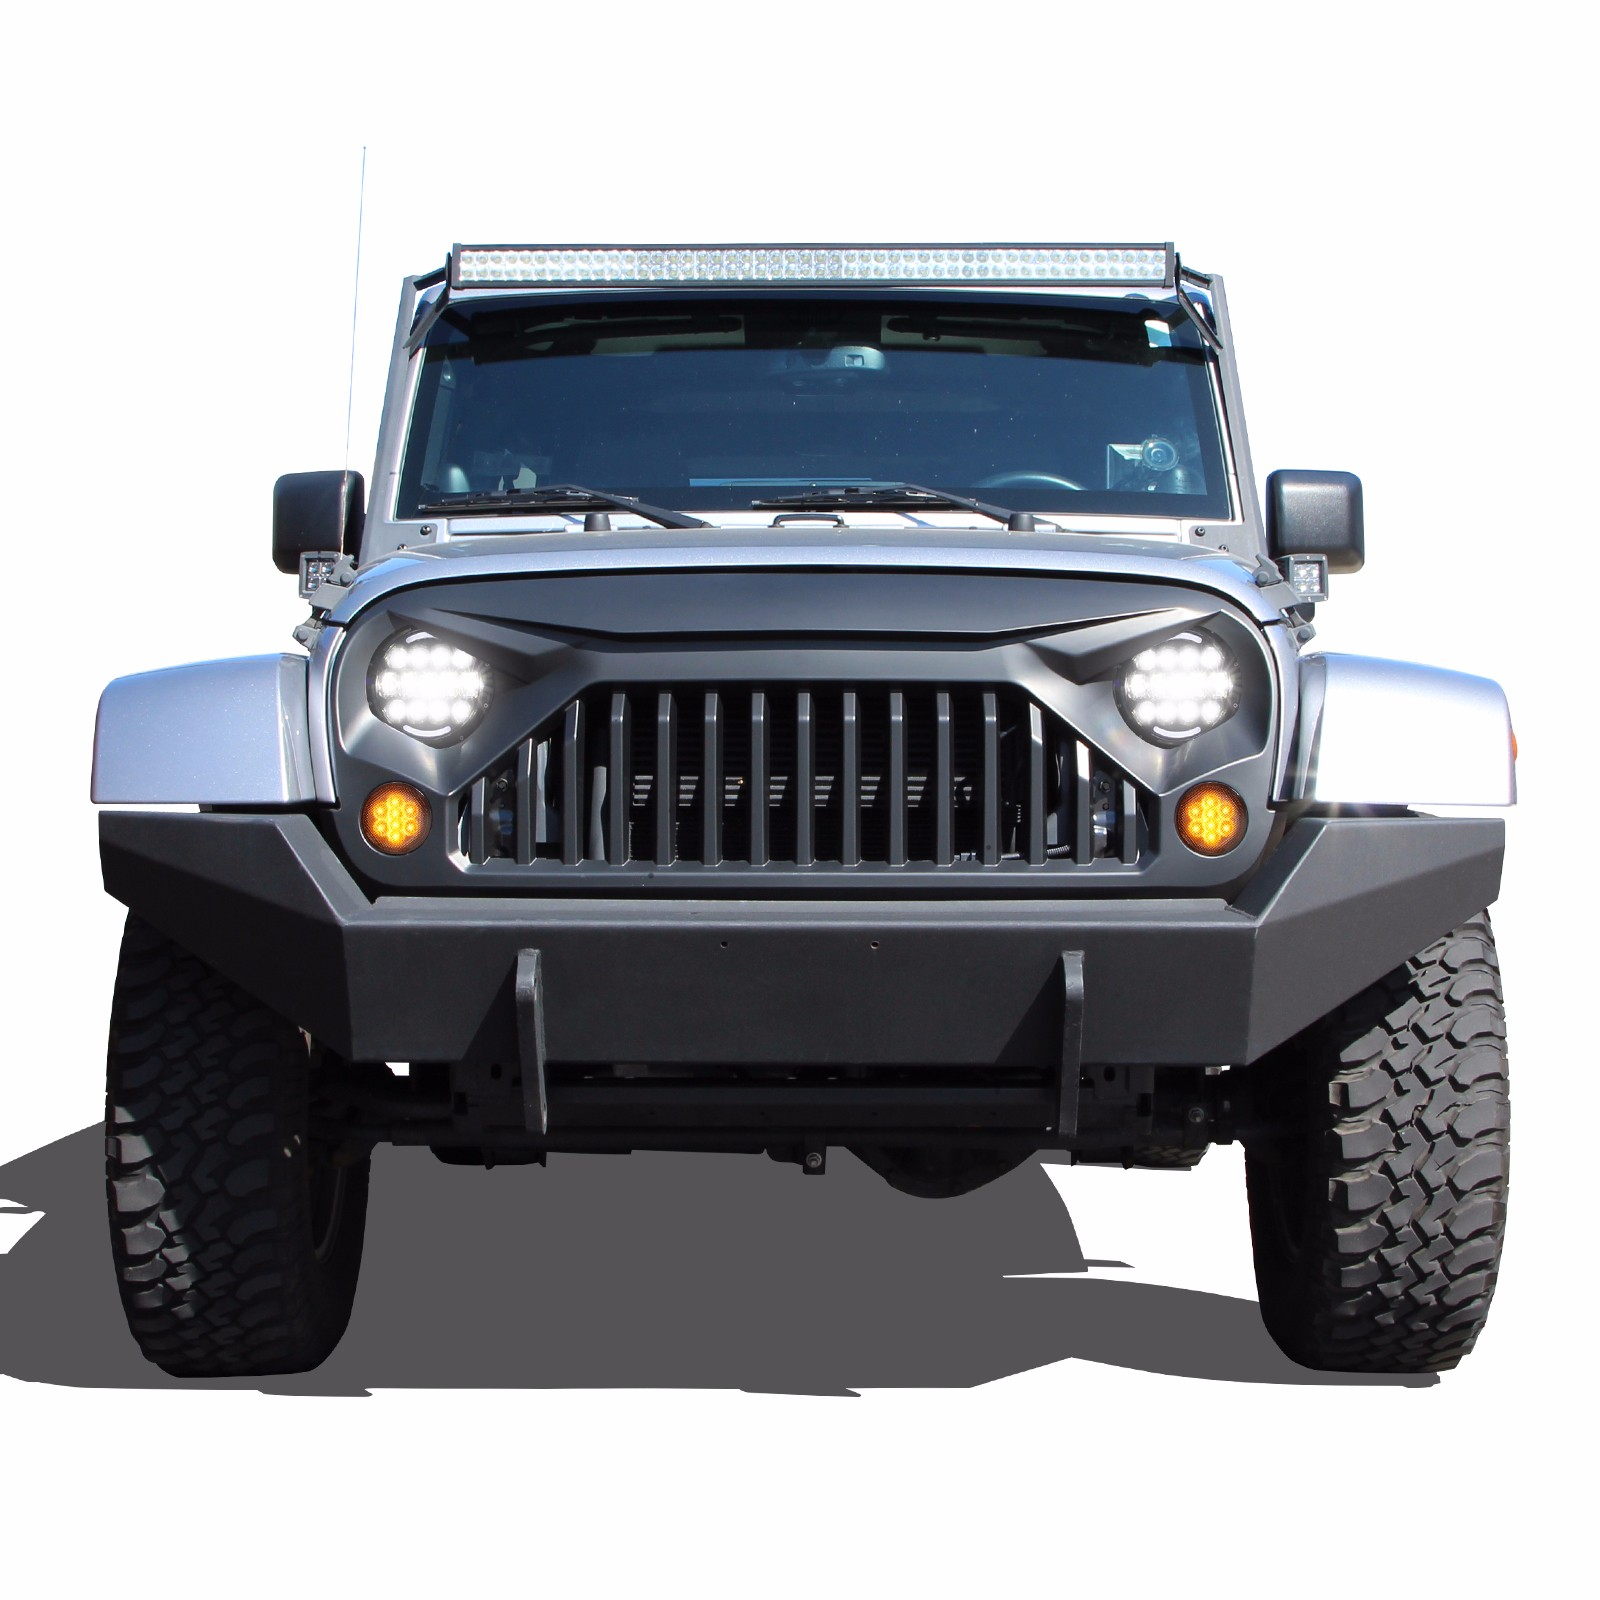 Jeep Wrangler Gladiator Grille Angry Bird Grille